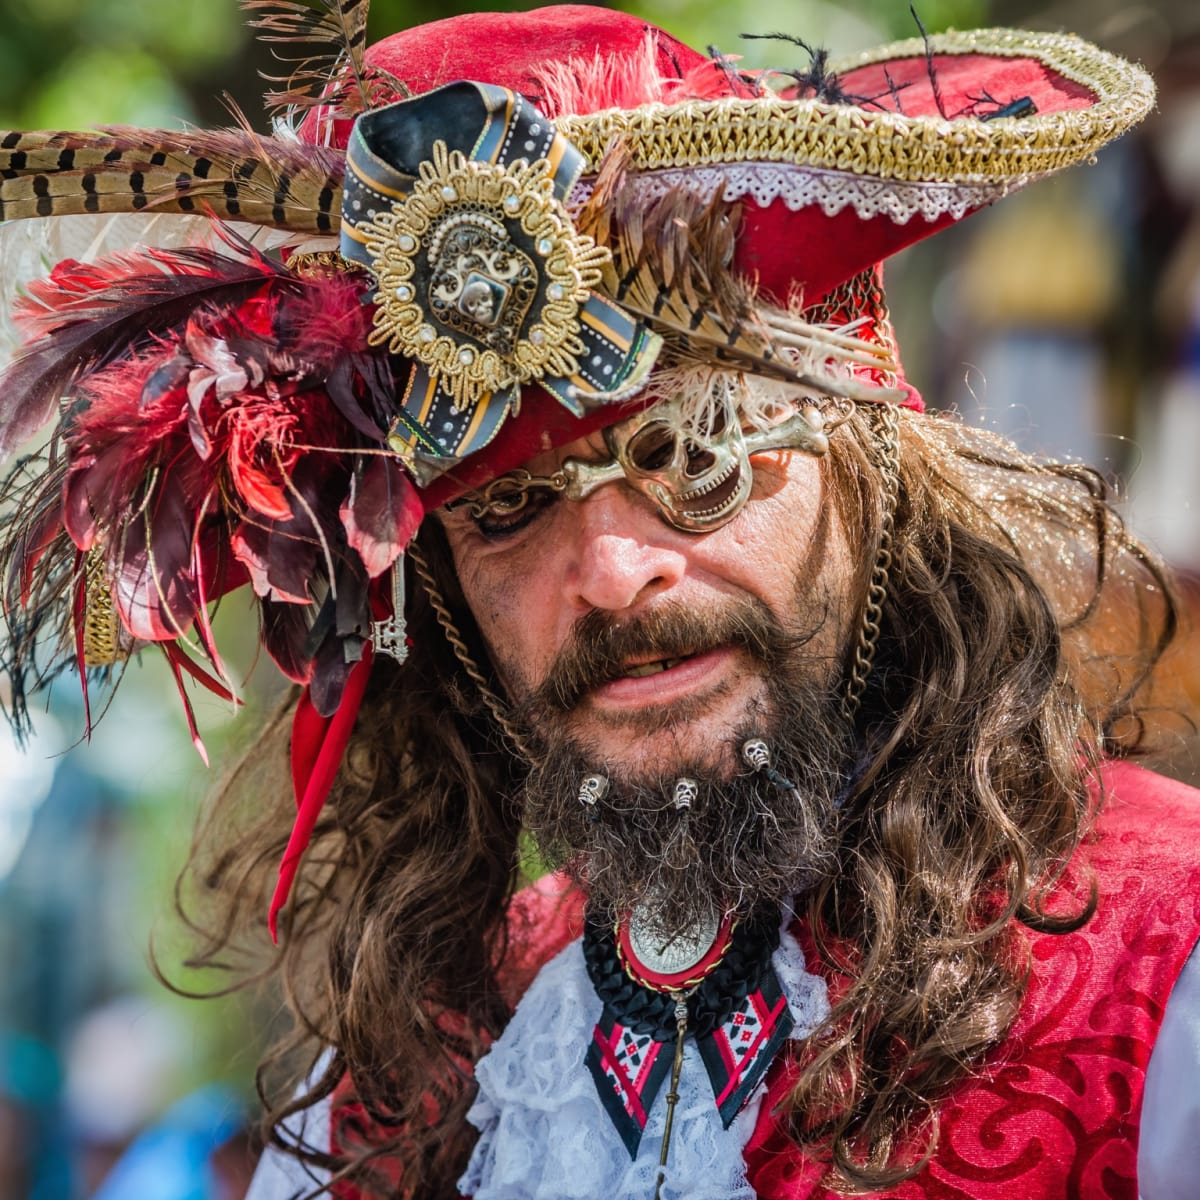 Texas Renaissance Festival pirate